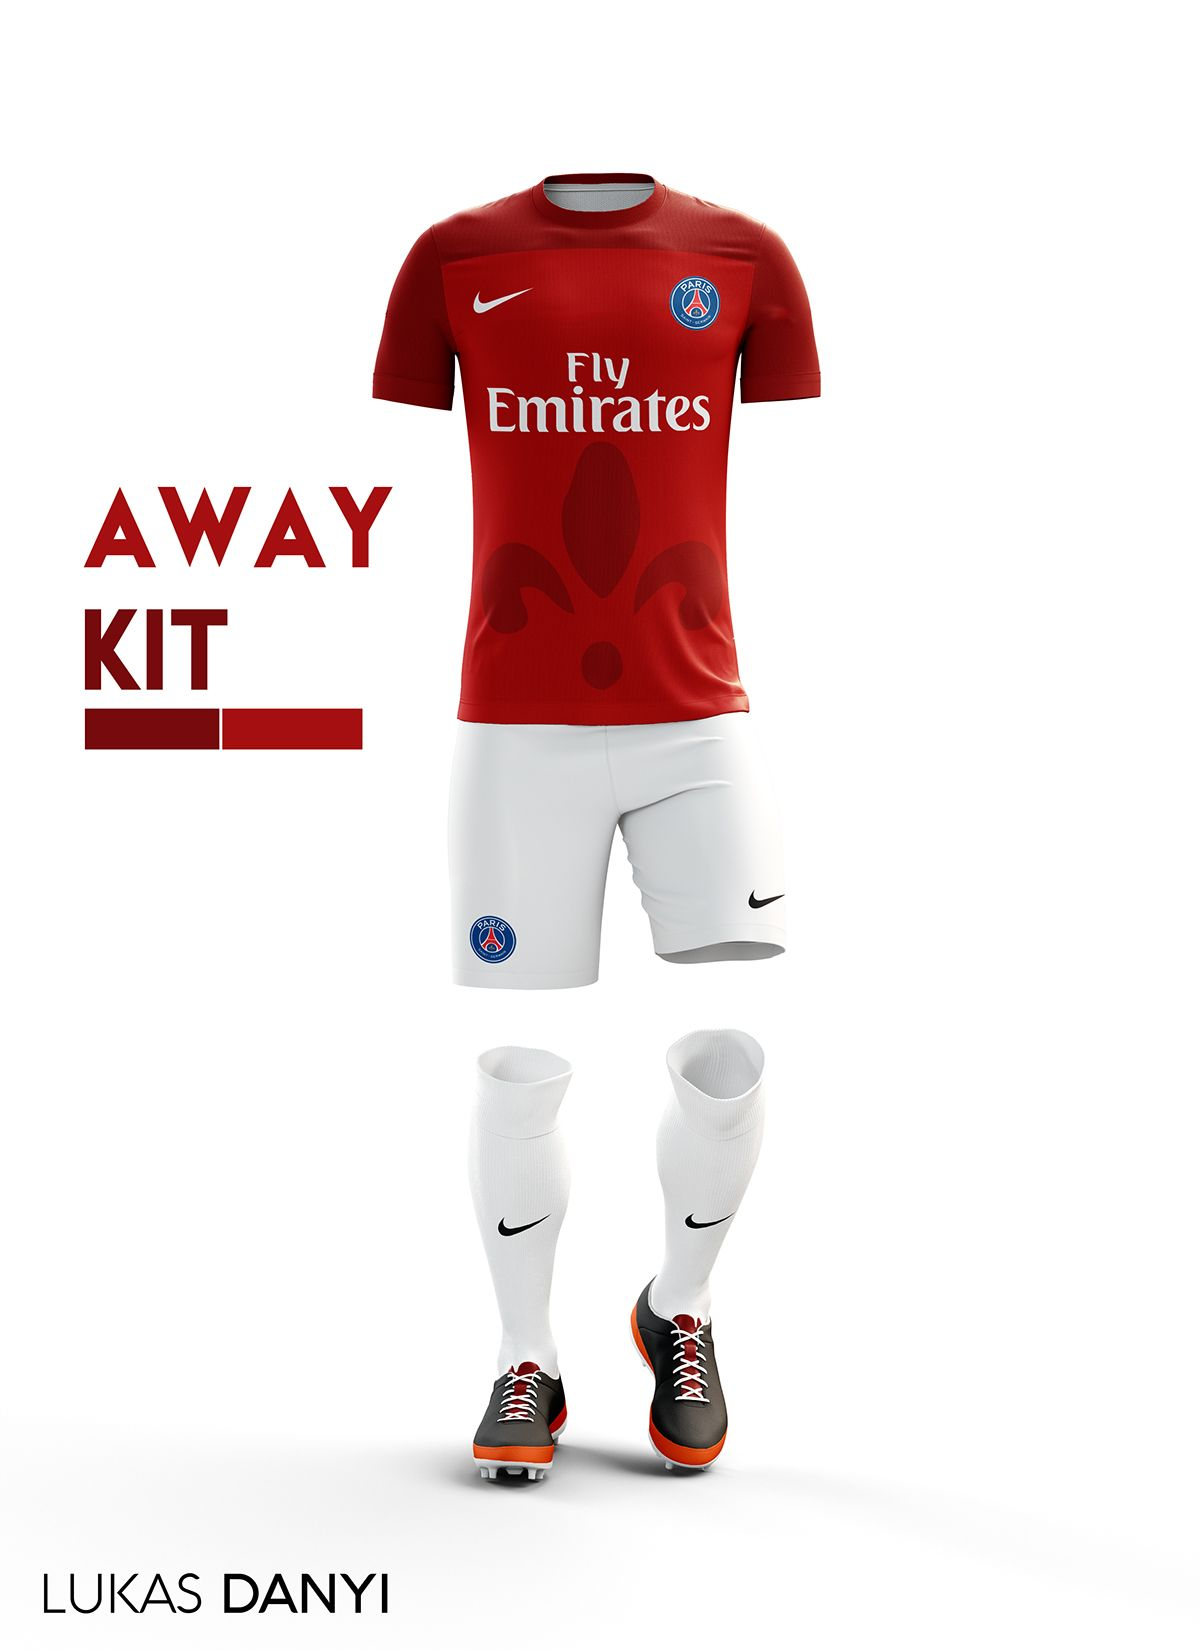 fdbaff9c4 I designed football kits for Paris Saint-Germain for the upcoming season 16  17.